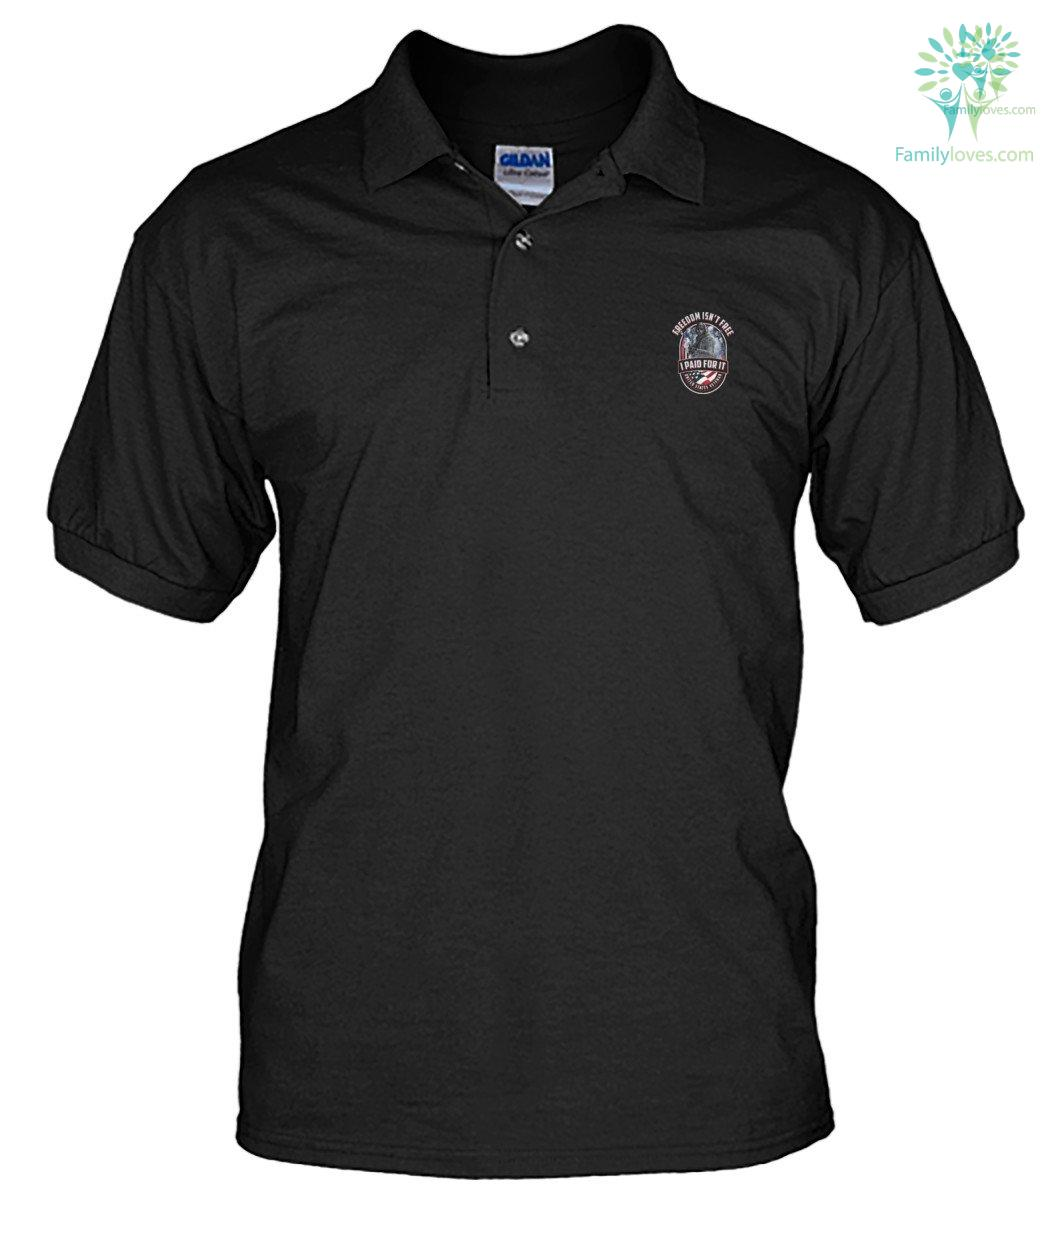 FREEDOM IS NOT FREE I PAID FOR IT, UNITED STATES VETERAN? polo shirt %tag familyloves.com